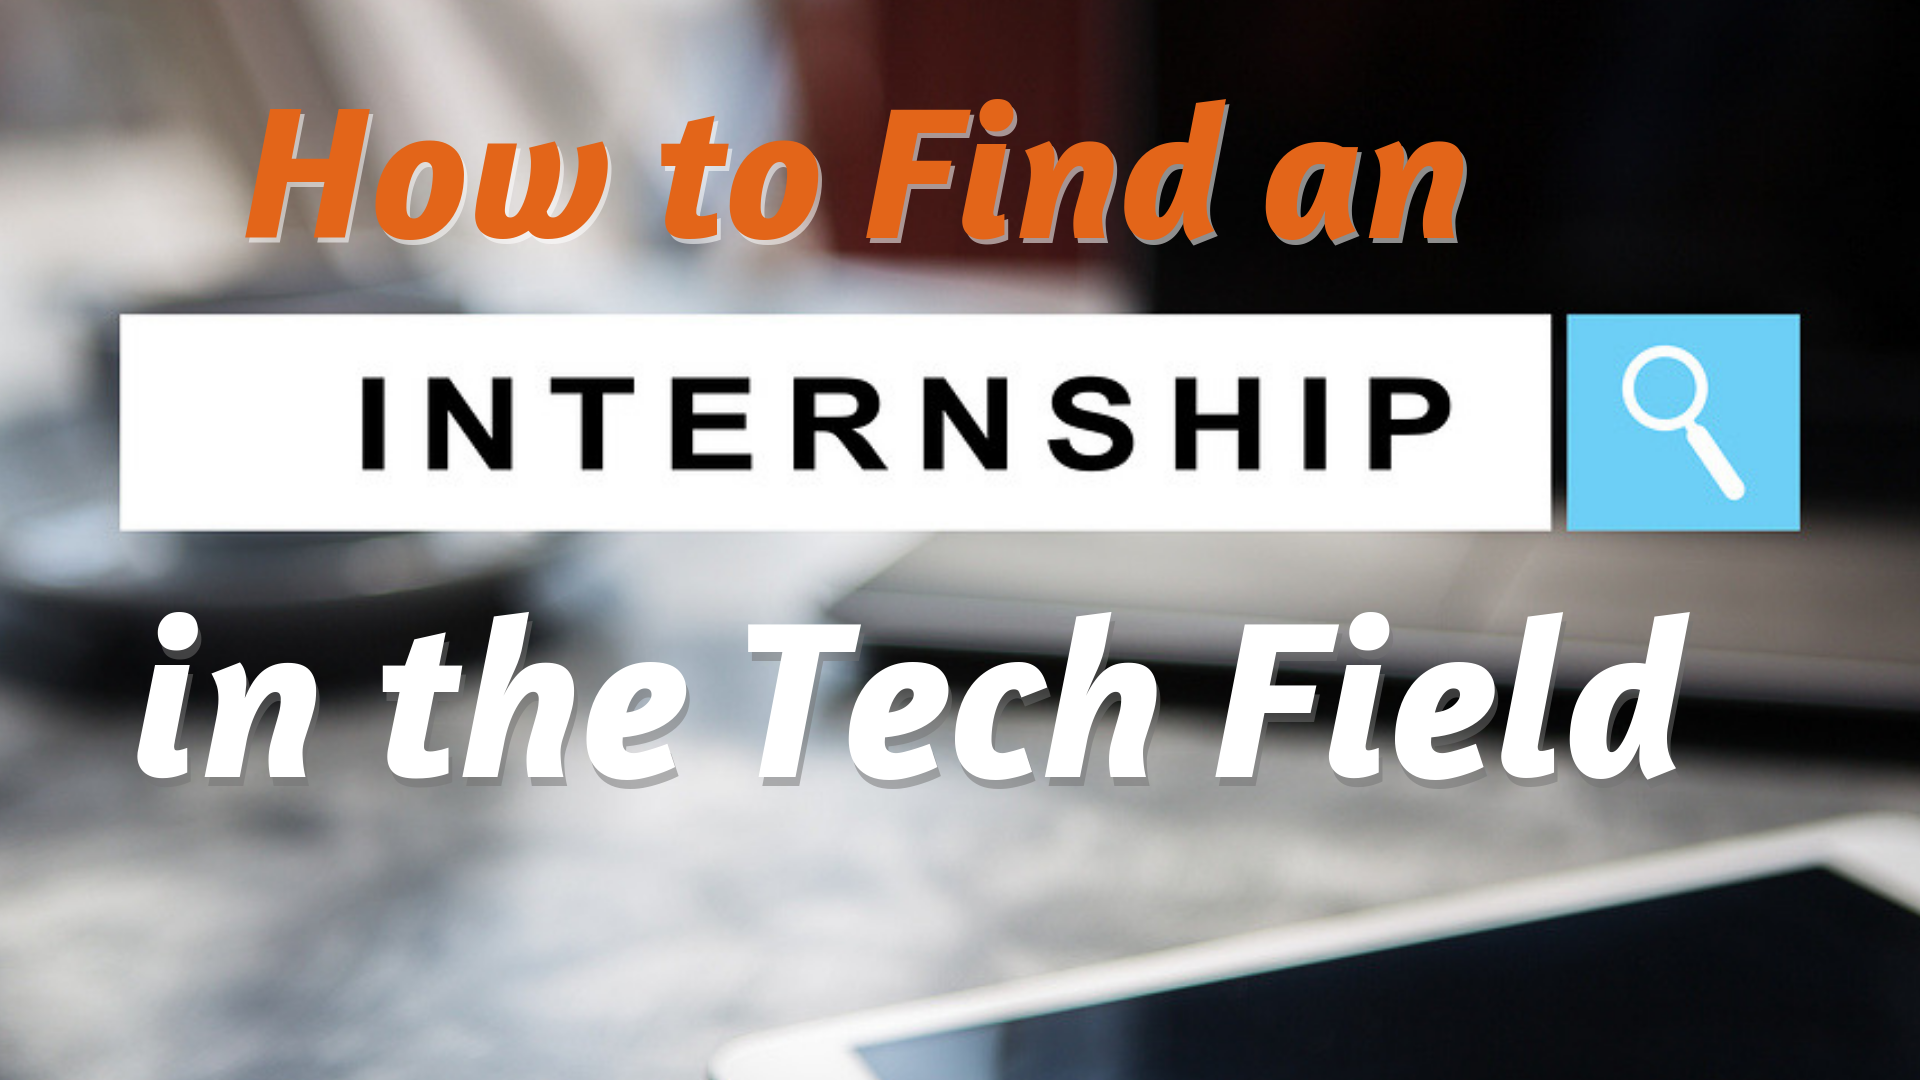 How to Find an Internship in the Tech Field